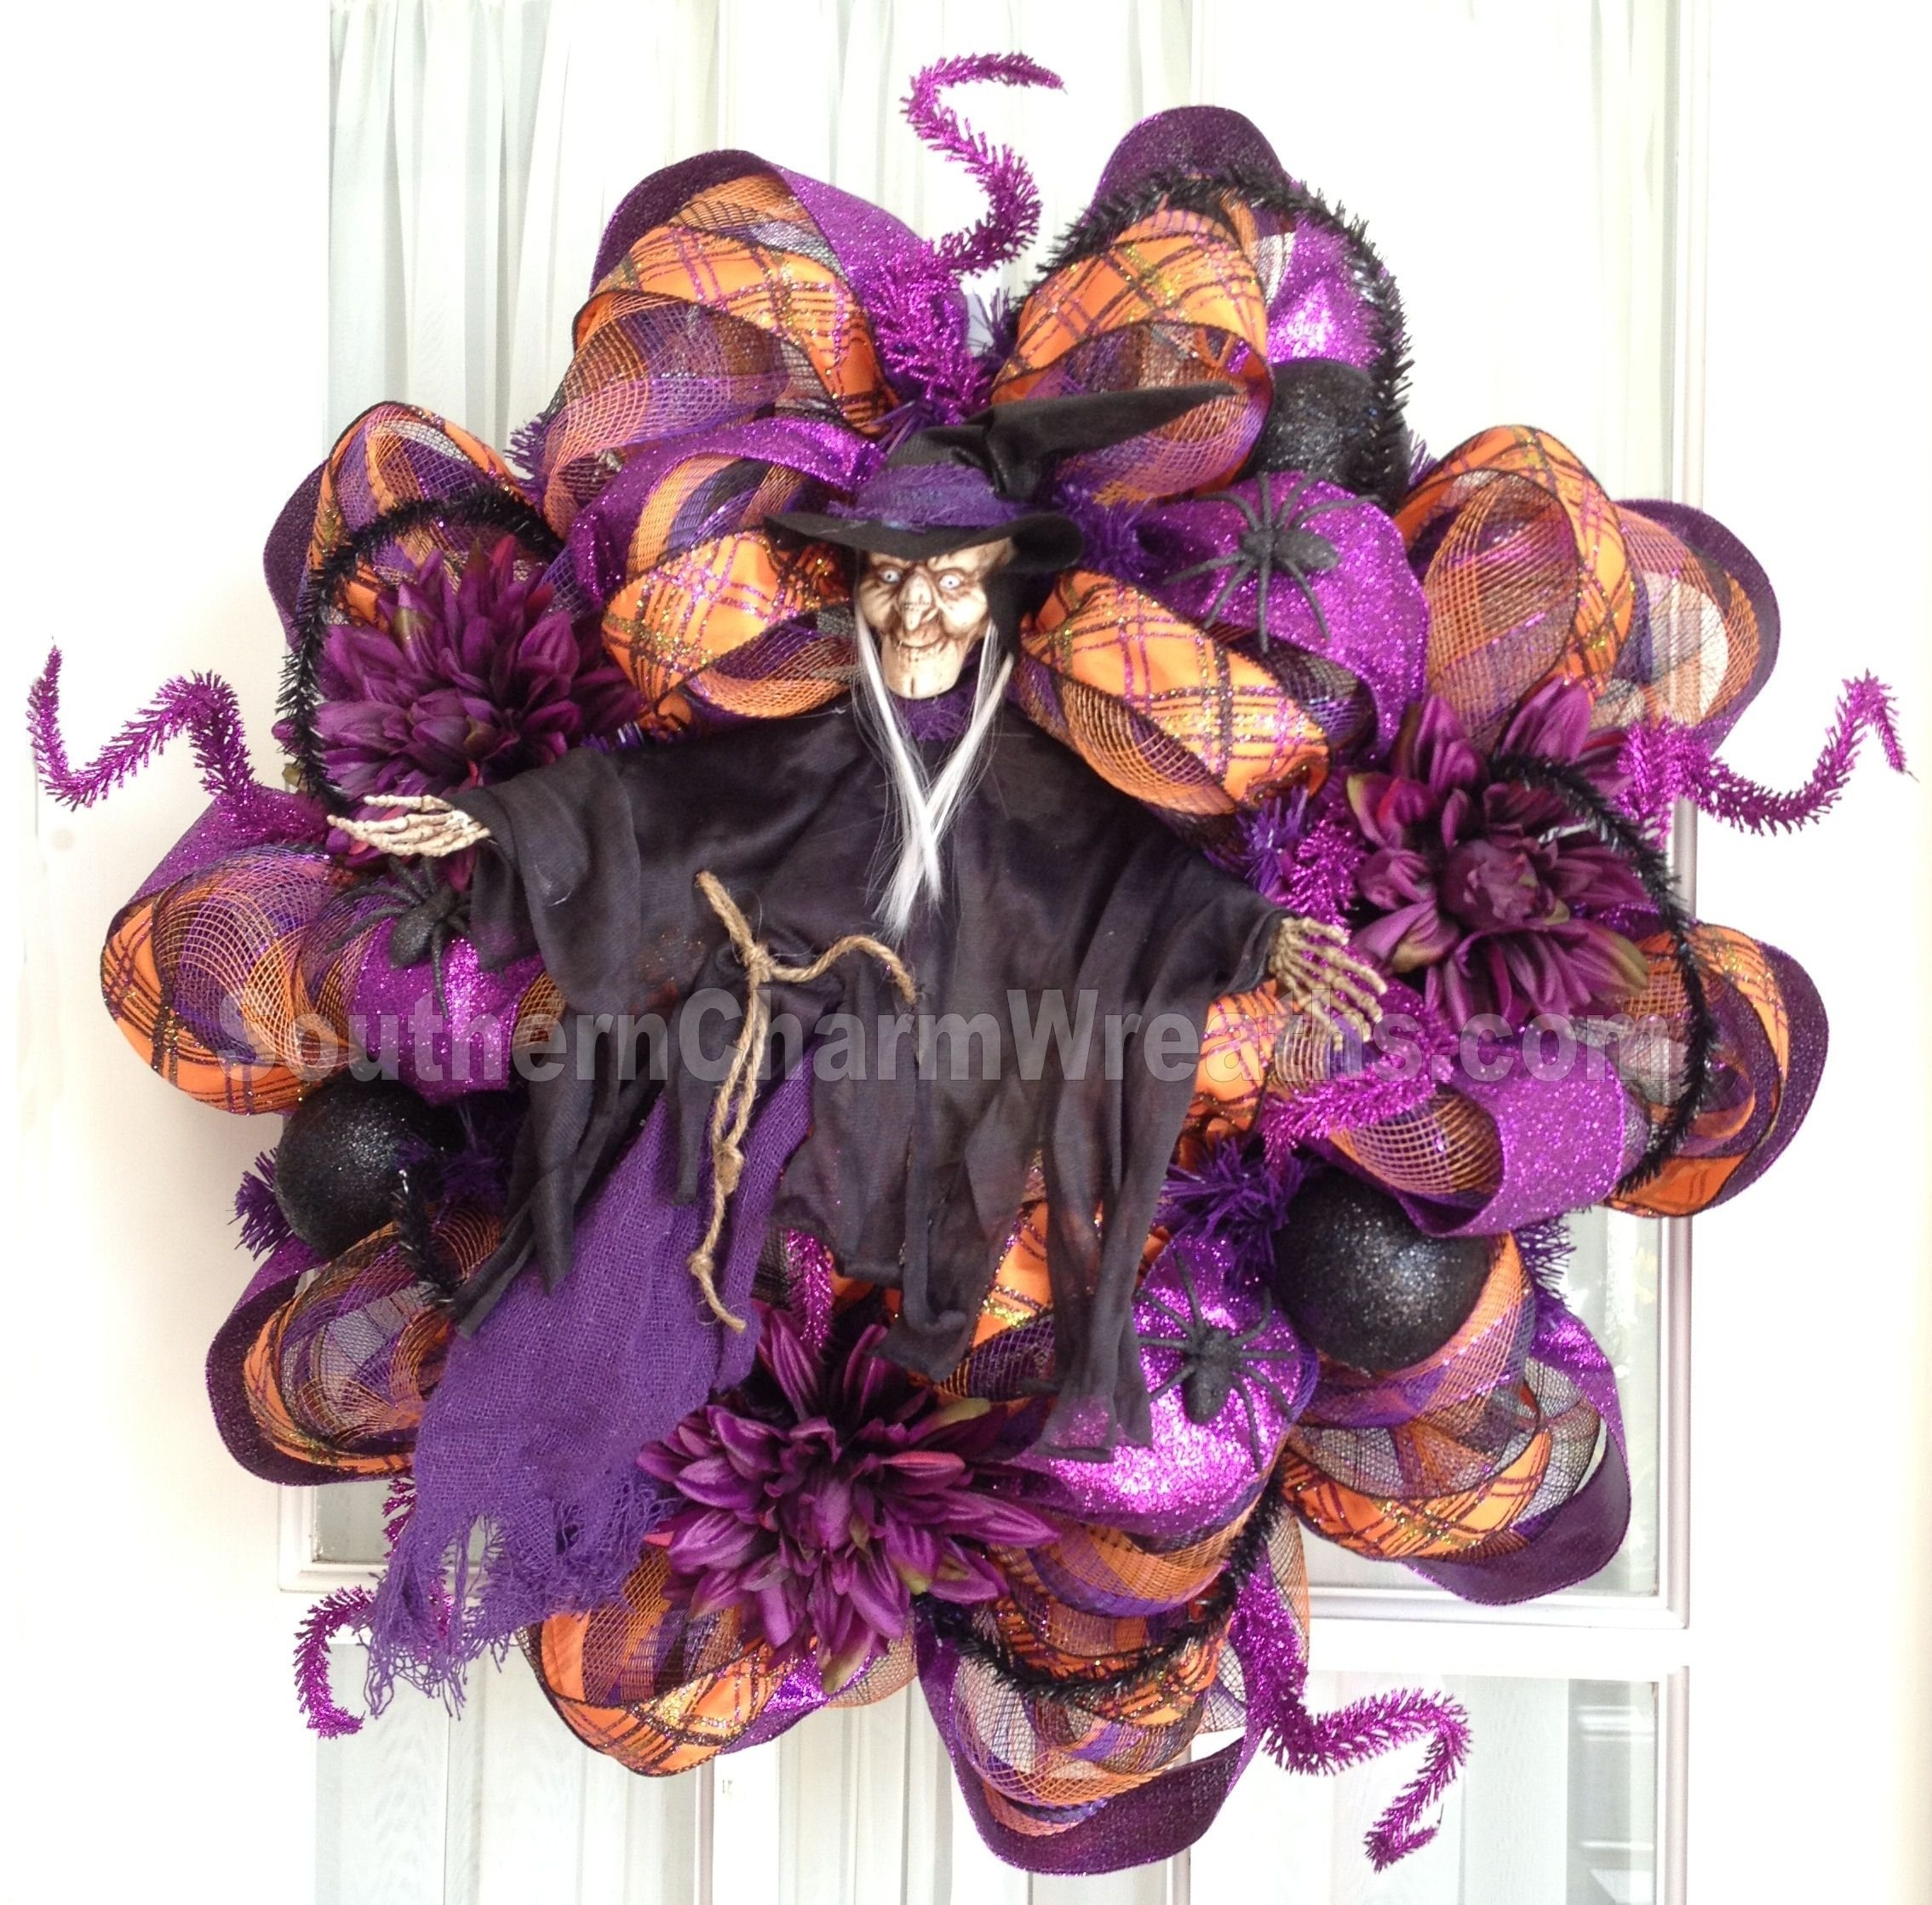 10 Most Recommended Deco Mesh Halloween Wreath Ideas how to make an autism awareness wreath wreaths halloween deco 2021